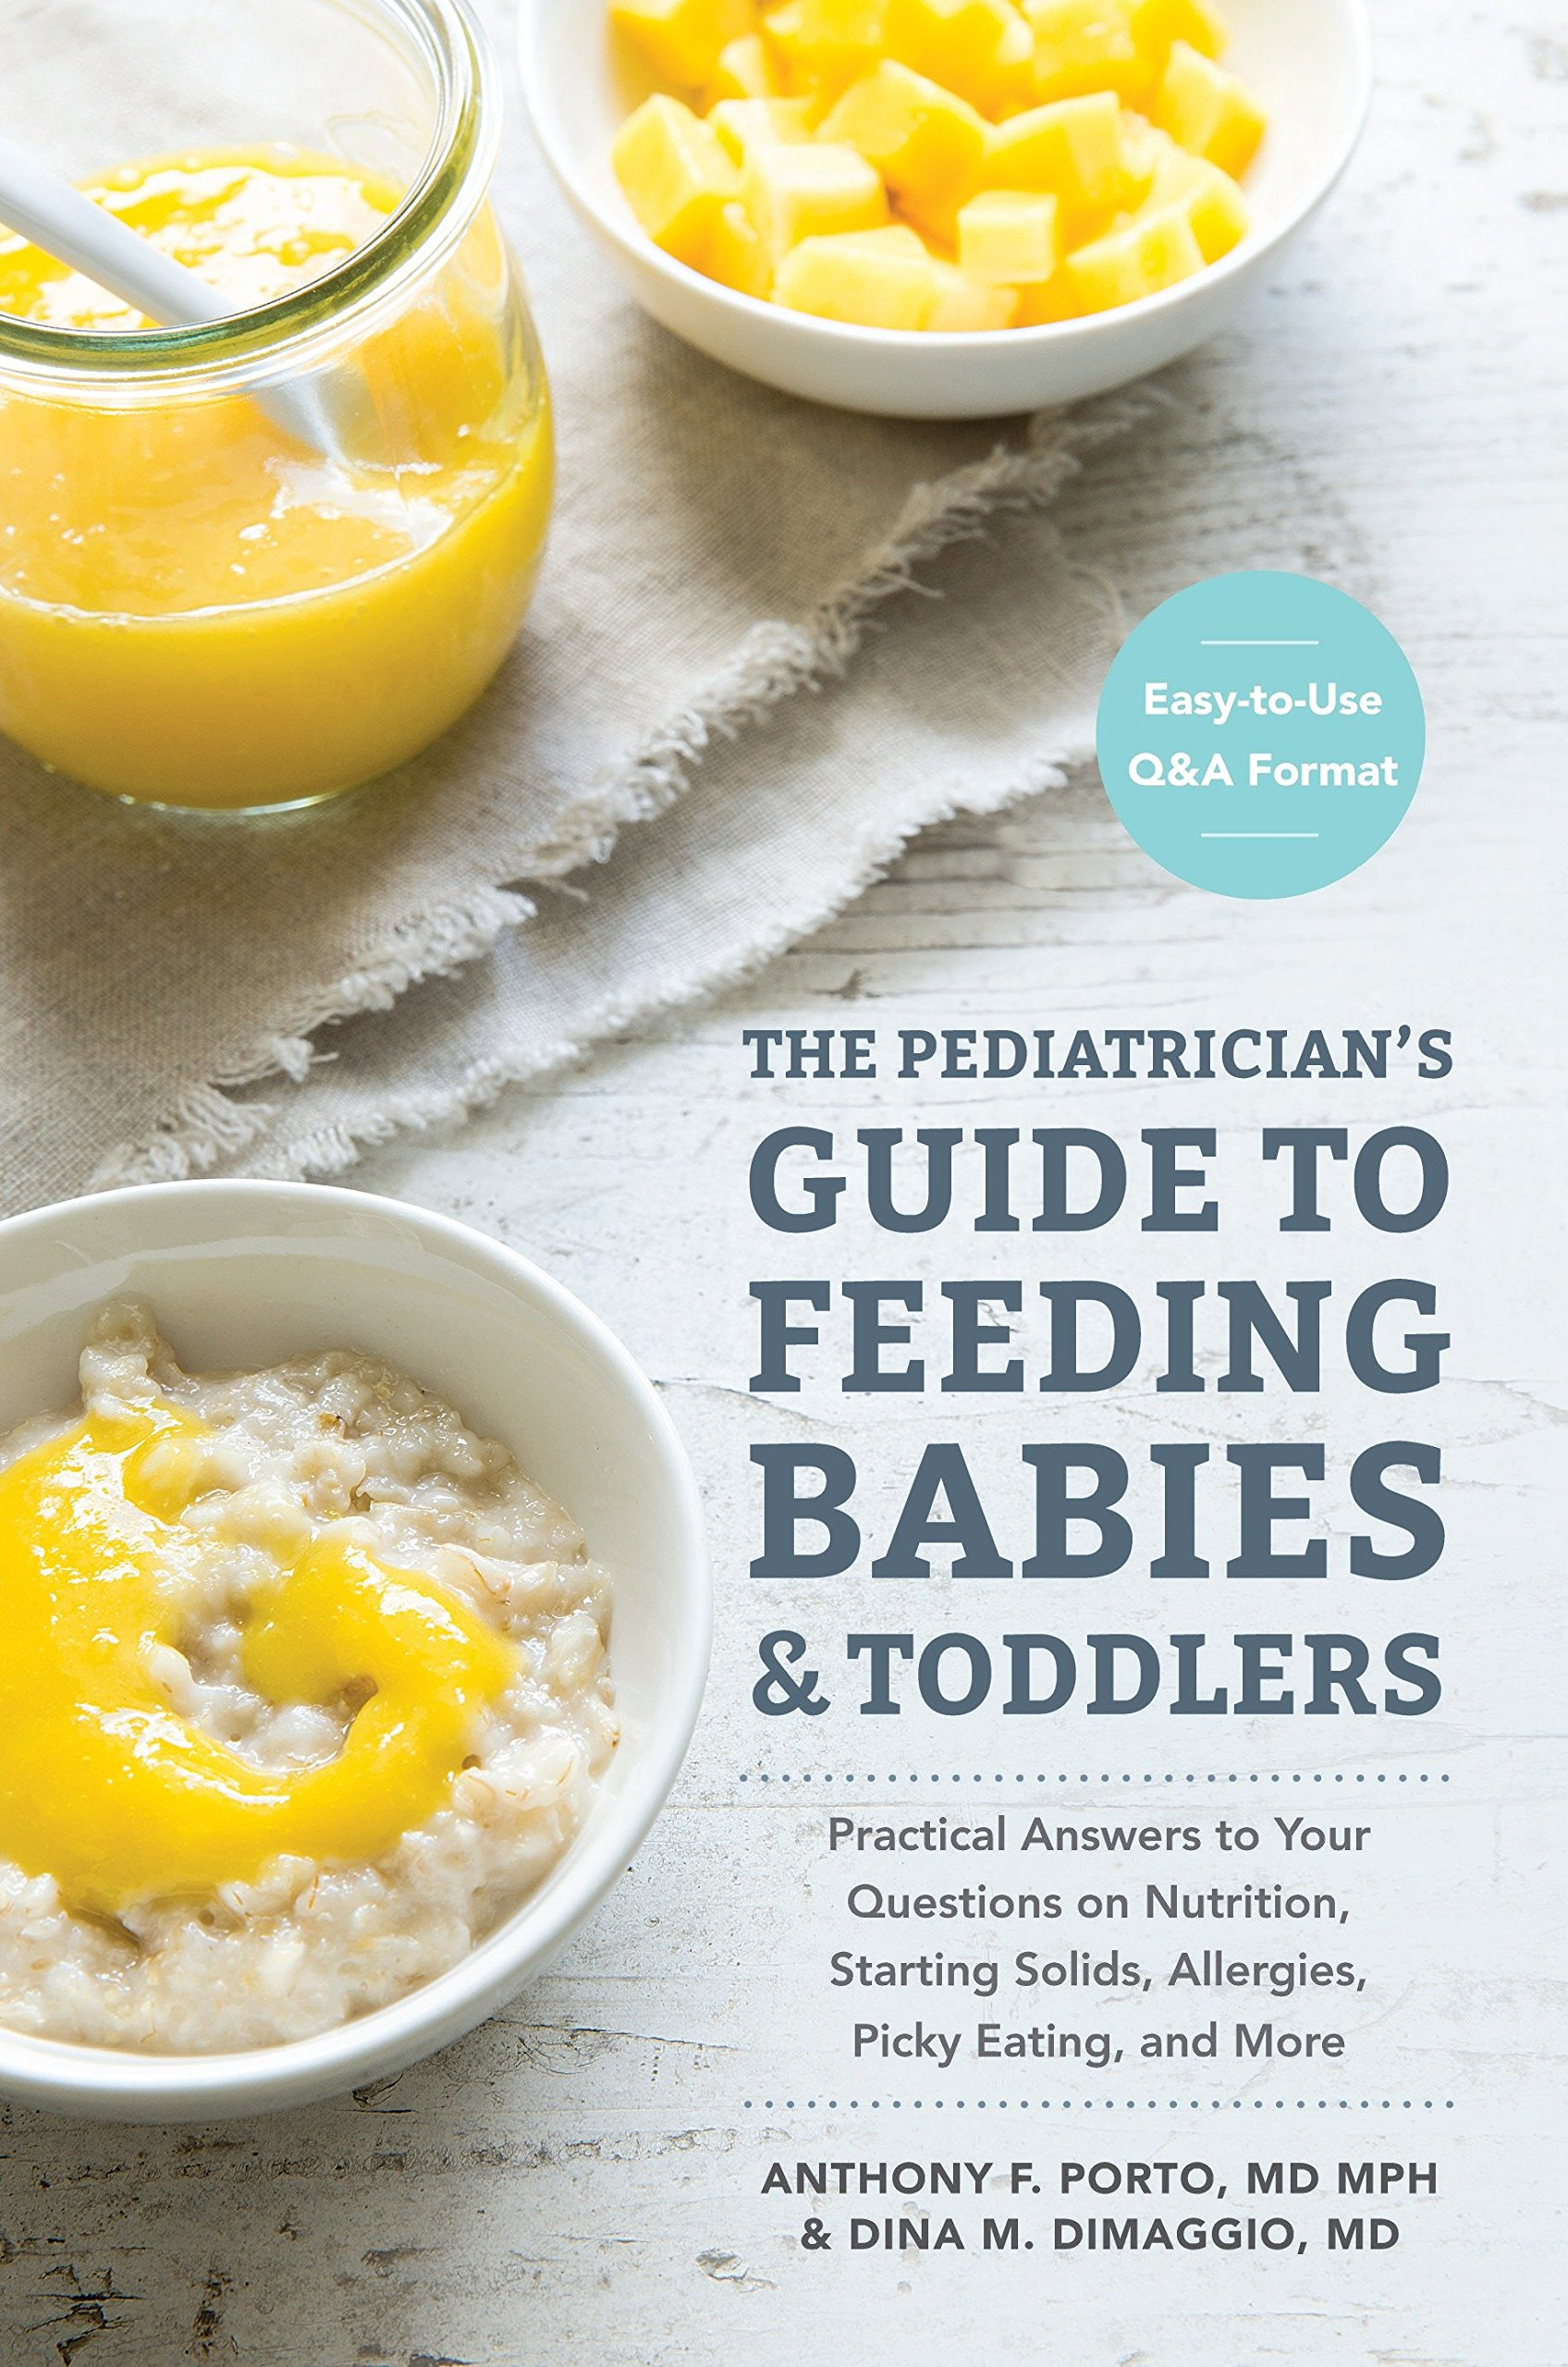 The Pediatrician's Guide to Feeding Babies and Toddlers: Practical